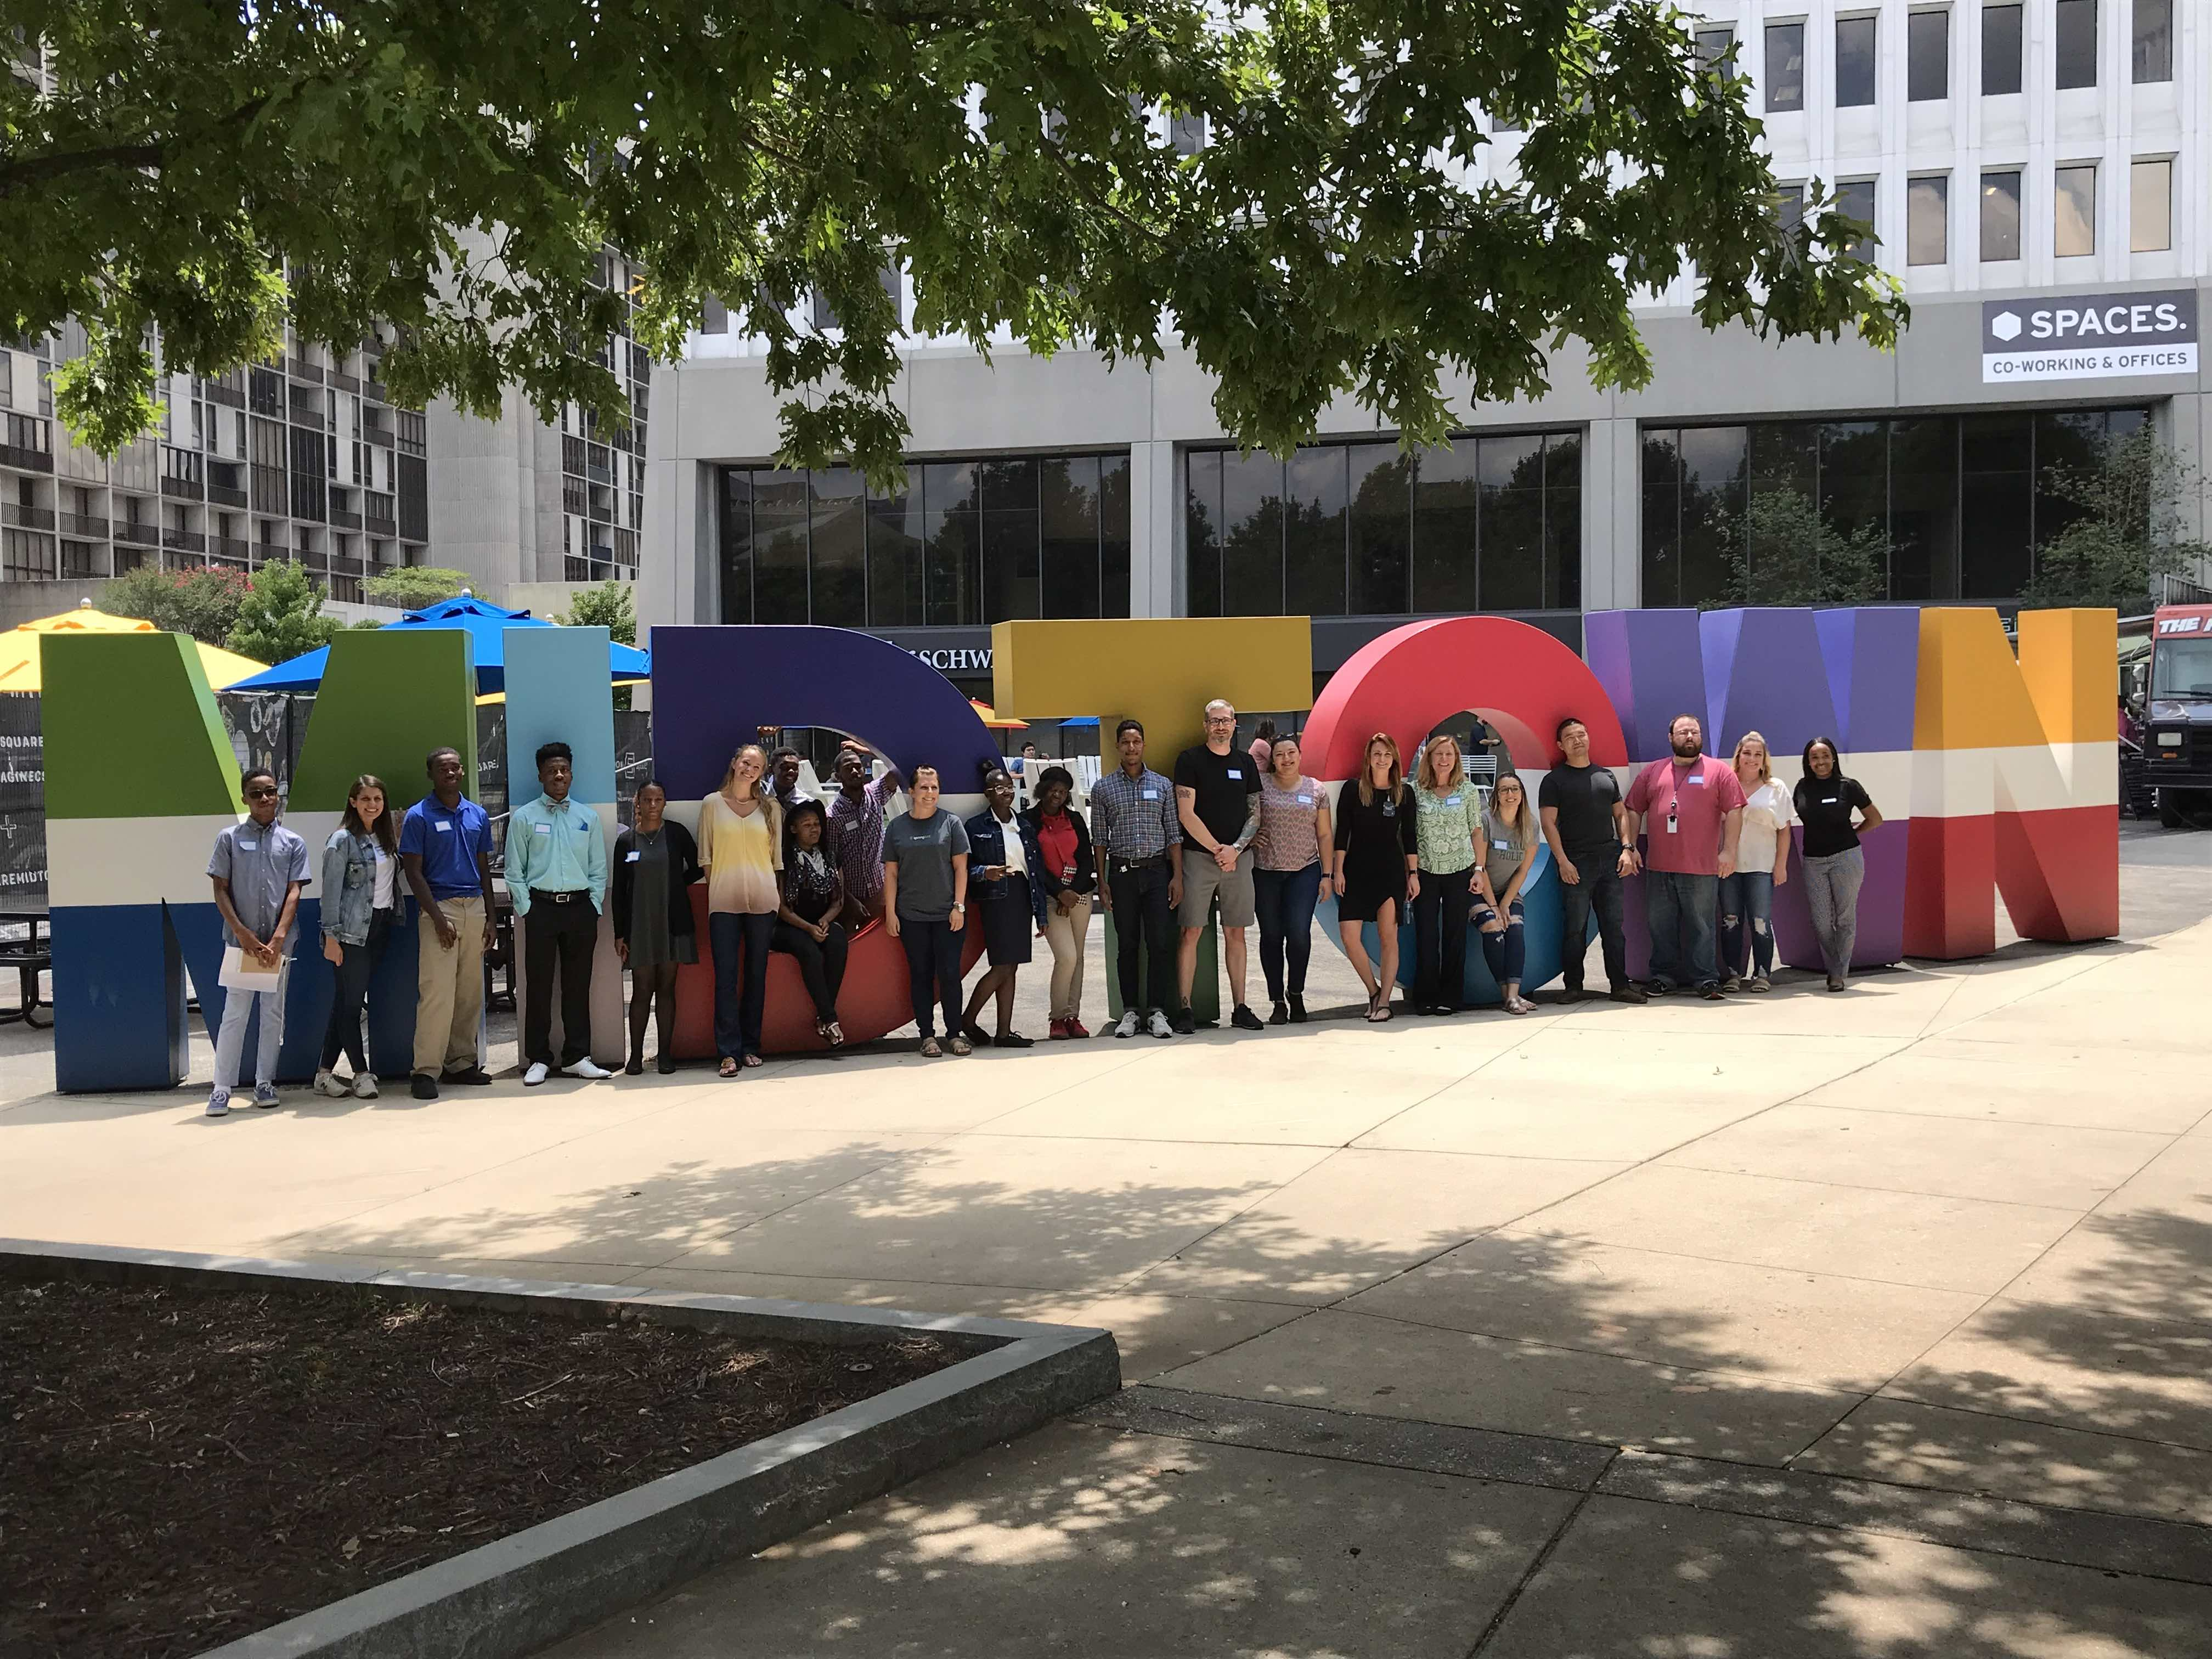 Springbot is located in Colony Square, making it easy to plan volunteer days with Boys and Girls Club of Metro Atlanta.